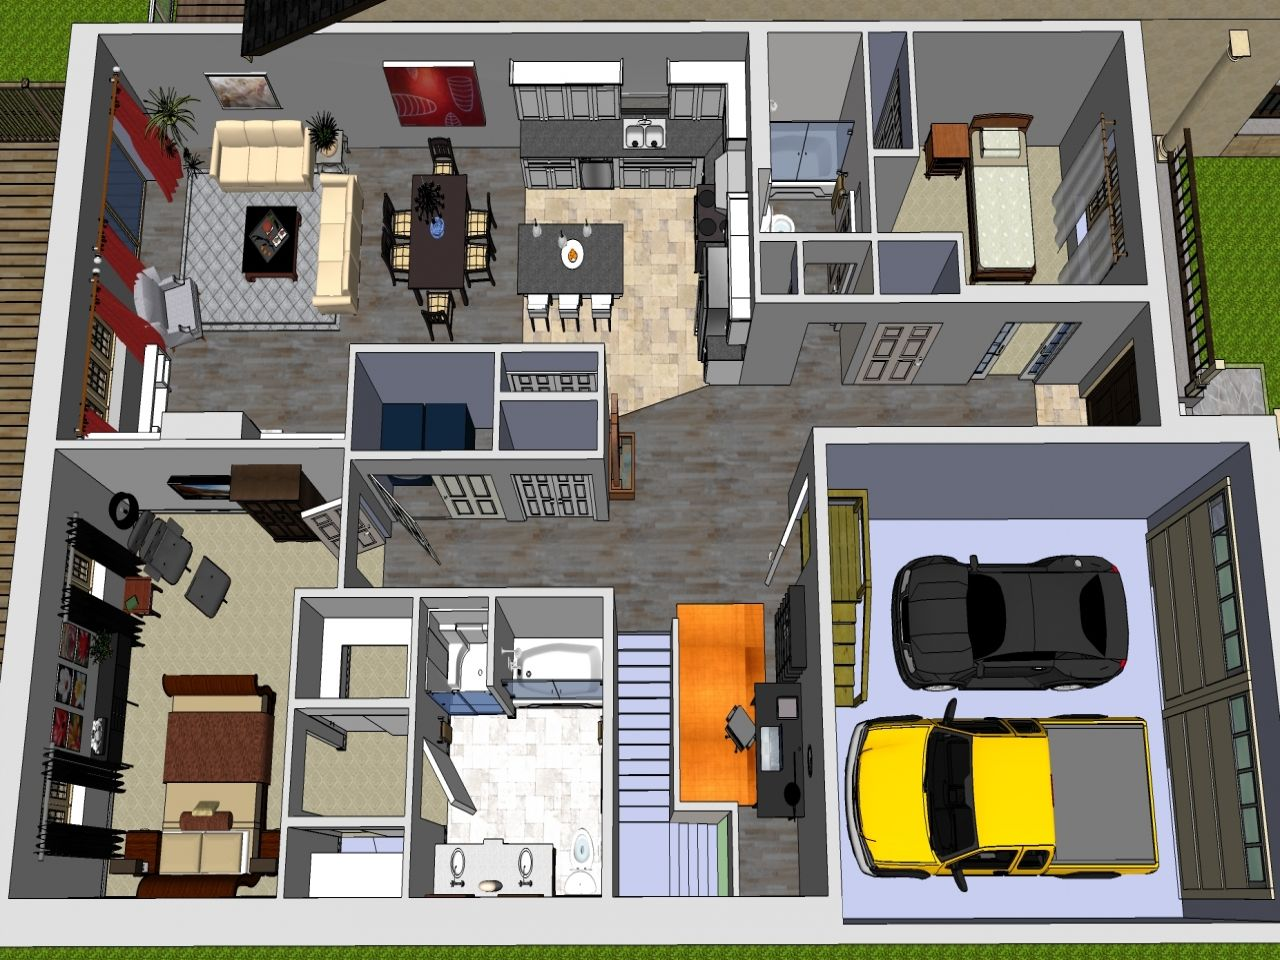 [ Modern Bungalow House Designs And Floor Plans For Small Homes Blueprints  Rising World Forum ] - Best Free Home Design Idea & Inspiration